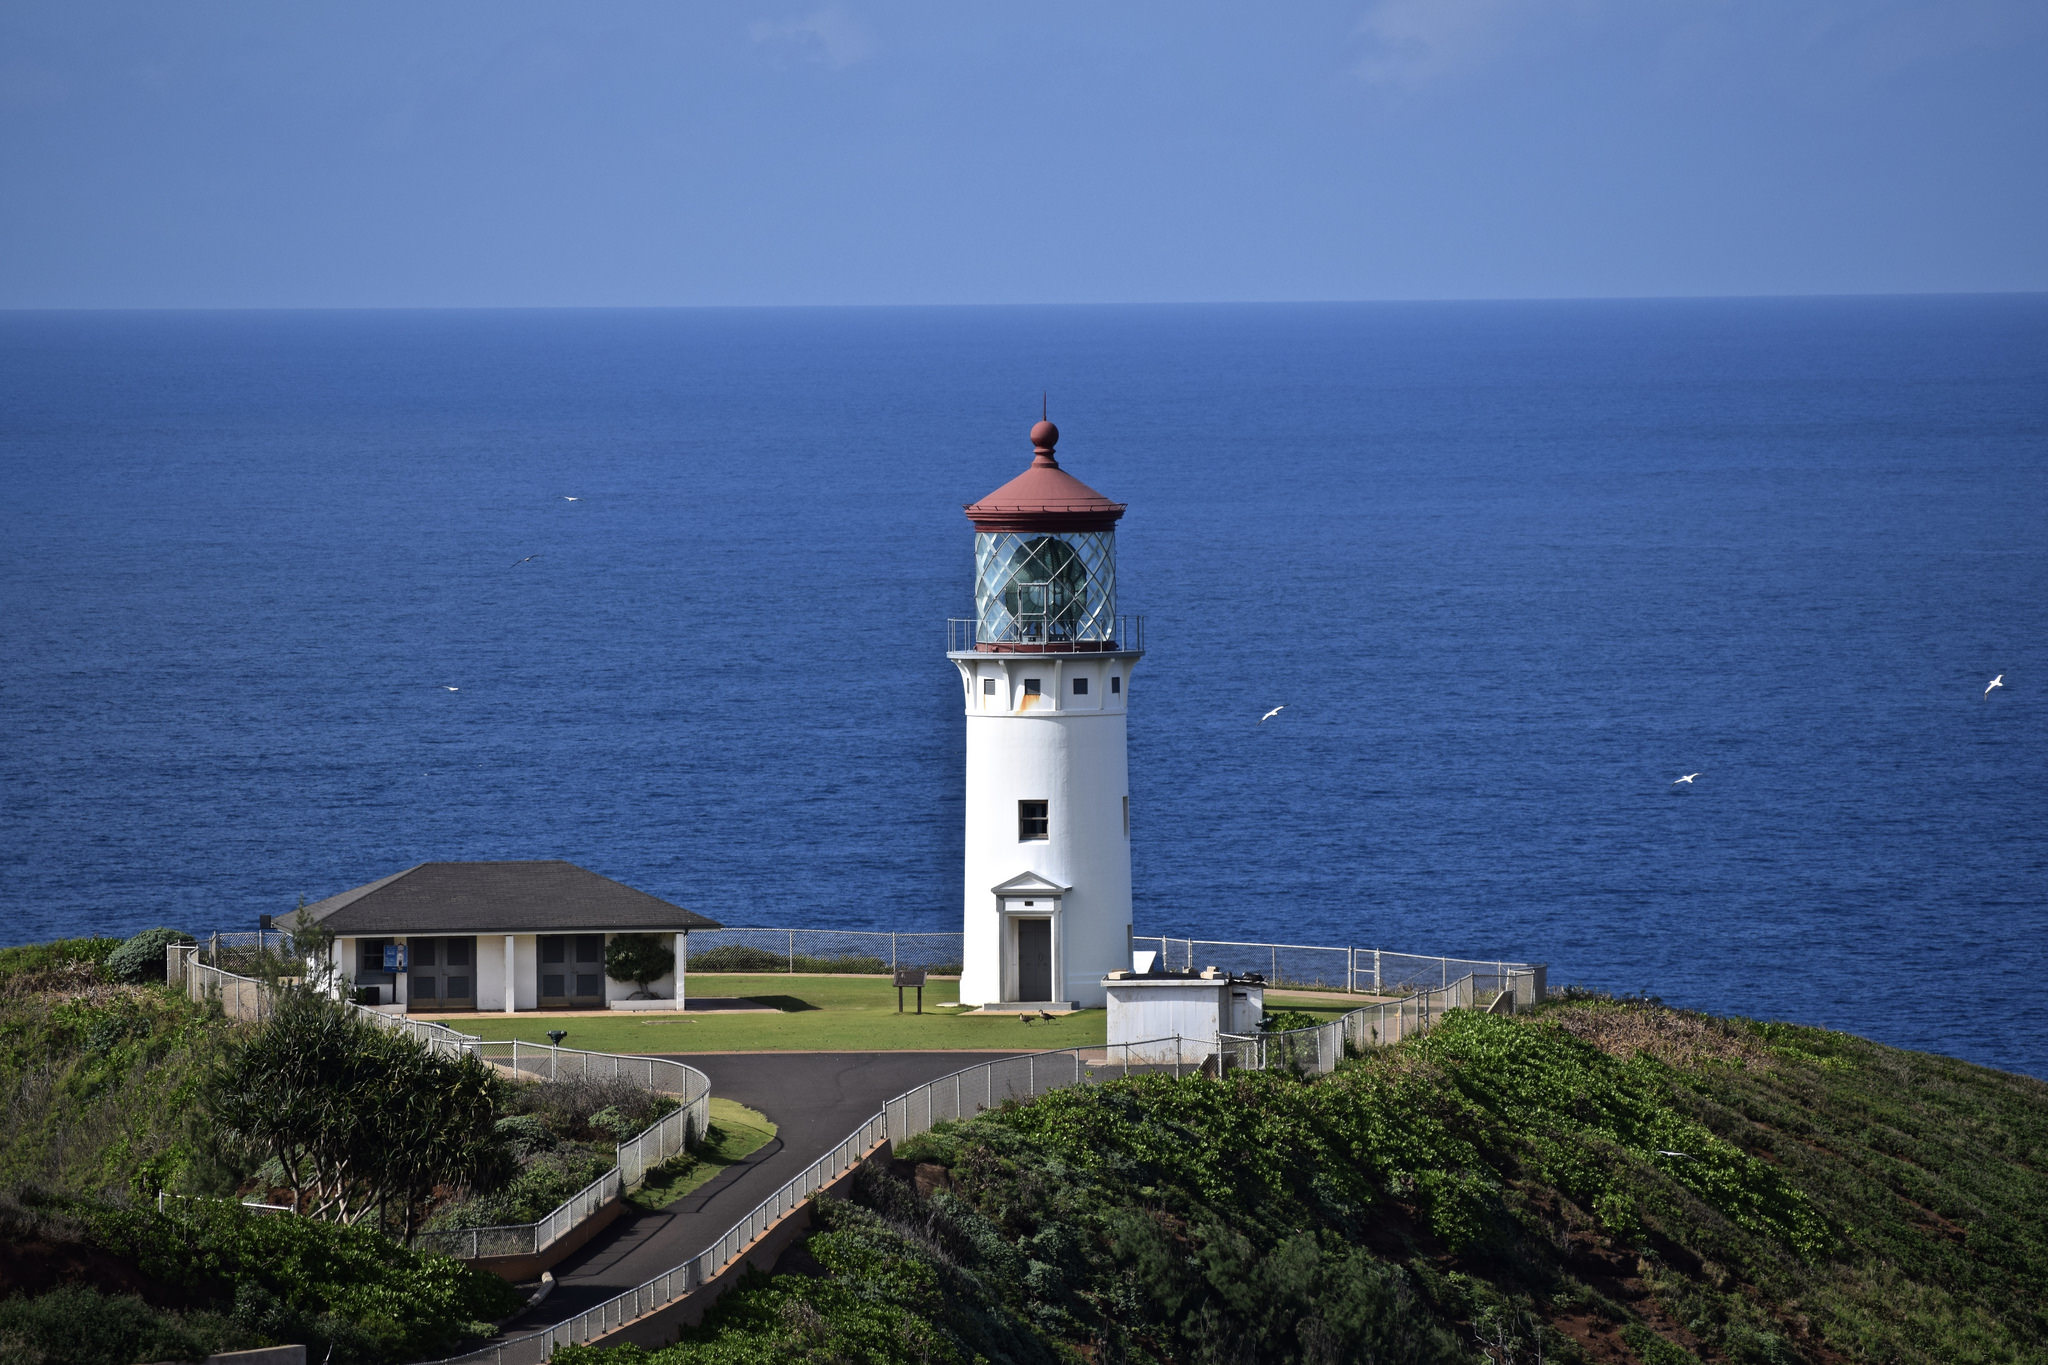 Hawaii S Kilauea Lighthouse Is Located In The Most Magical